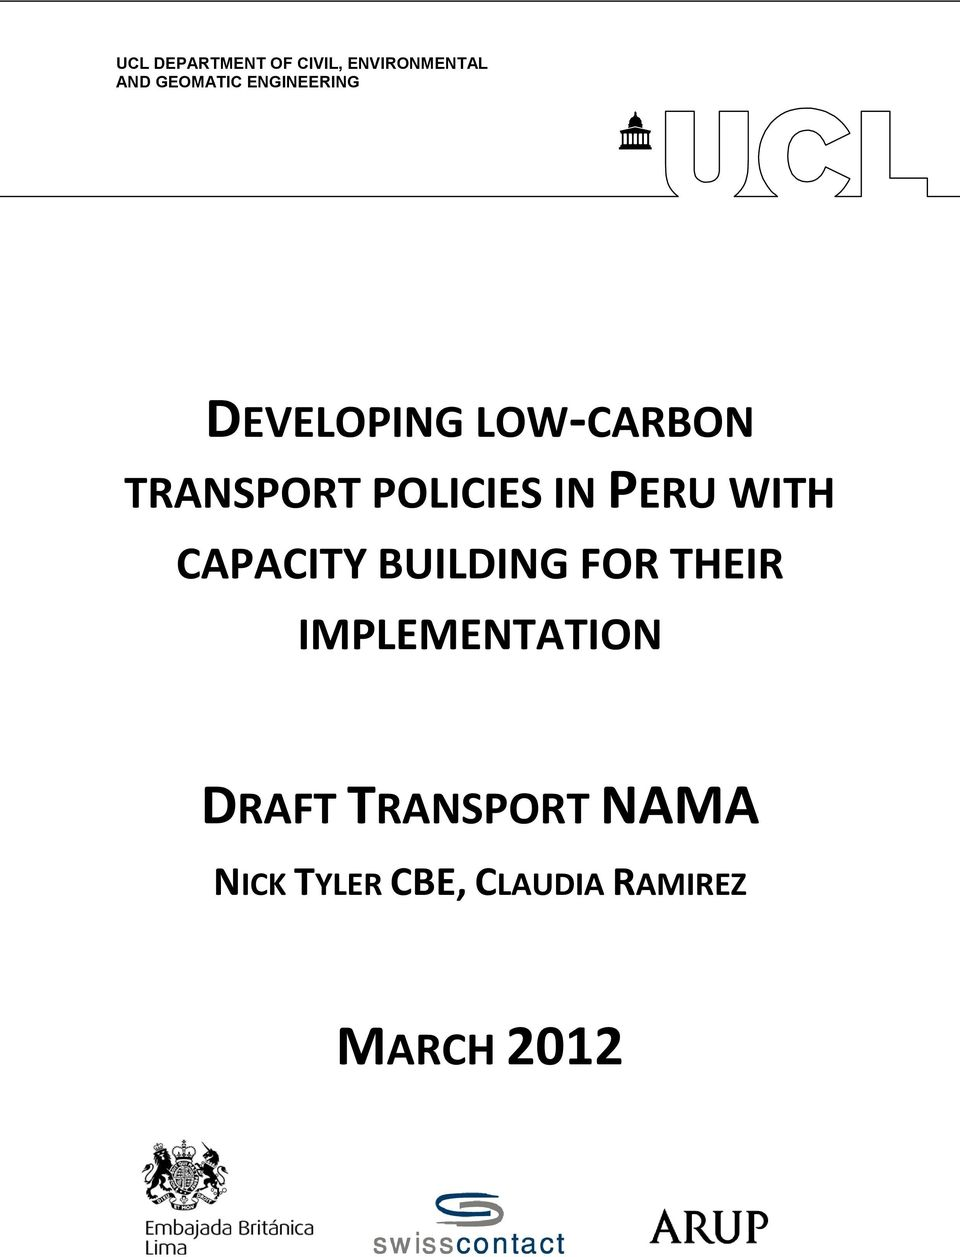 PERU WITH CAPACITY BUILDING FOR THEIR IMPLEMENTATION